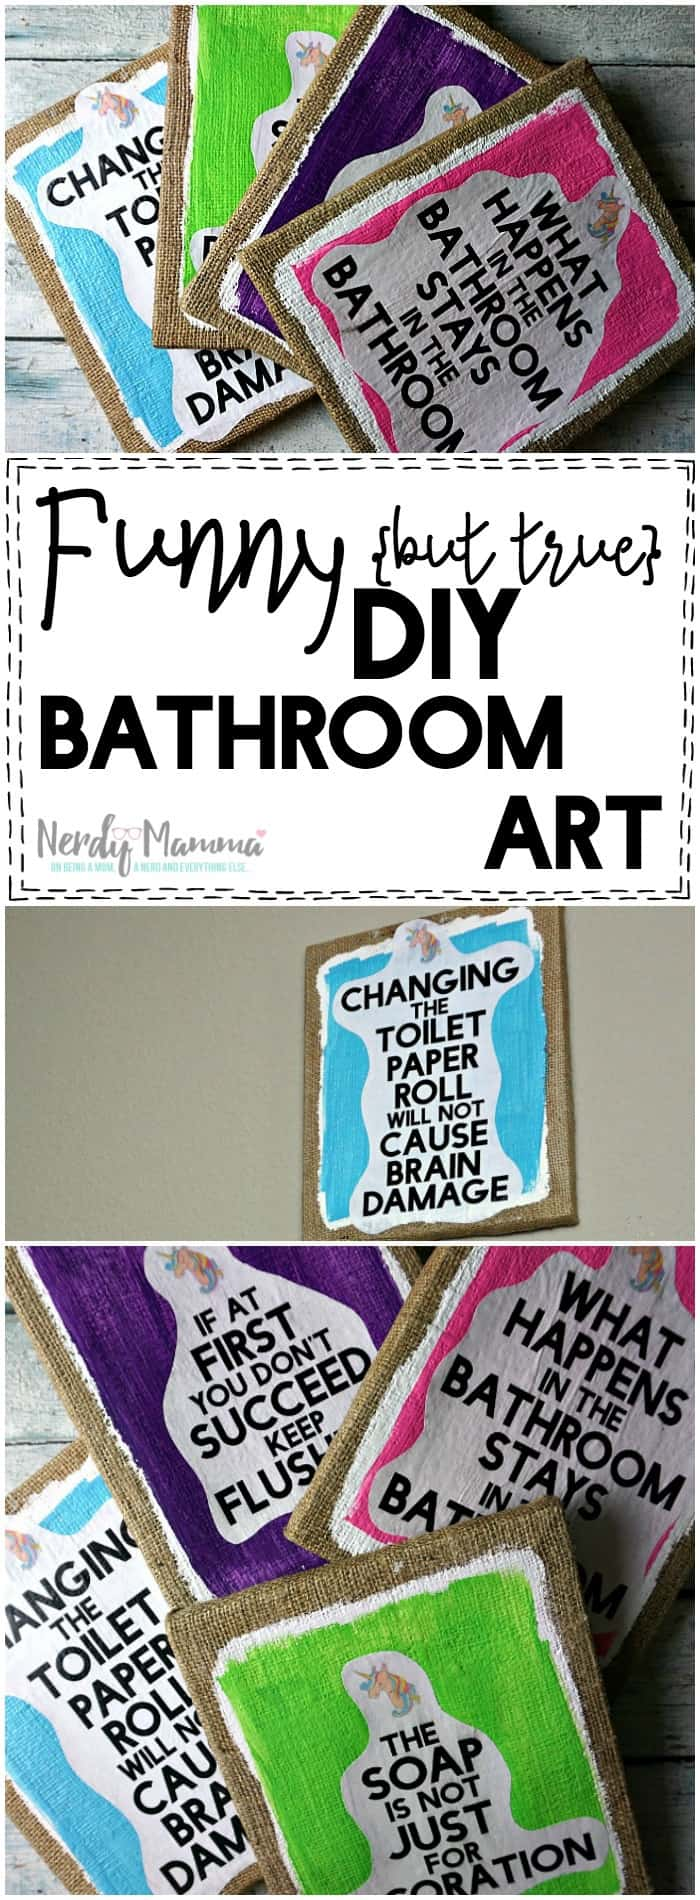 image about Free Printable Bathroom Art named Humorous yet legitimate Do it yourself Rest room Artwork Absolutely free Printable - Nerdy Mamma